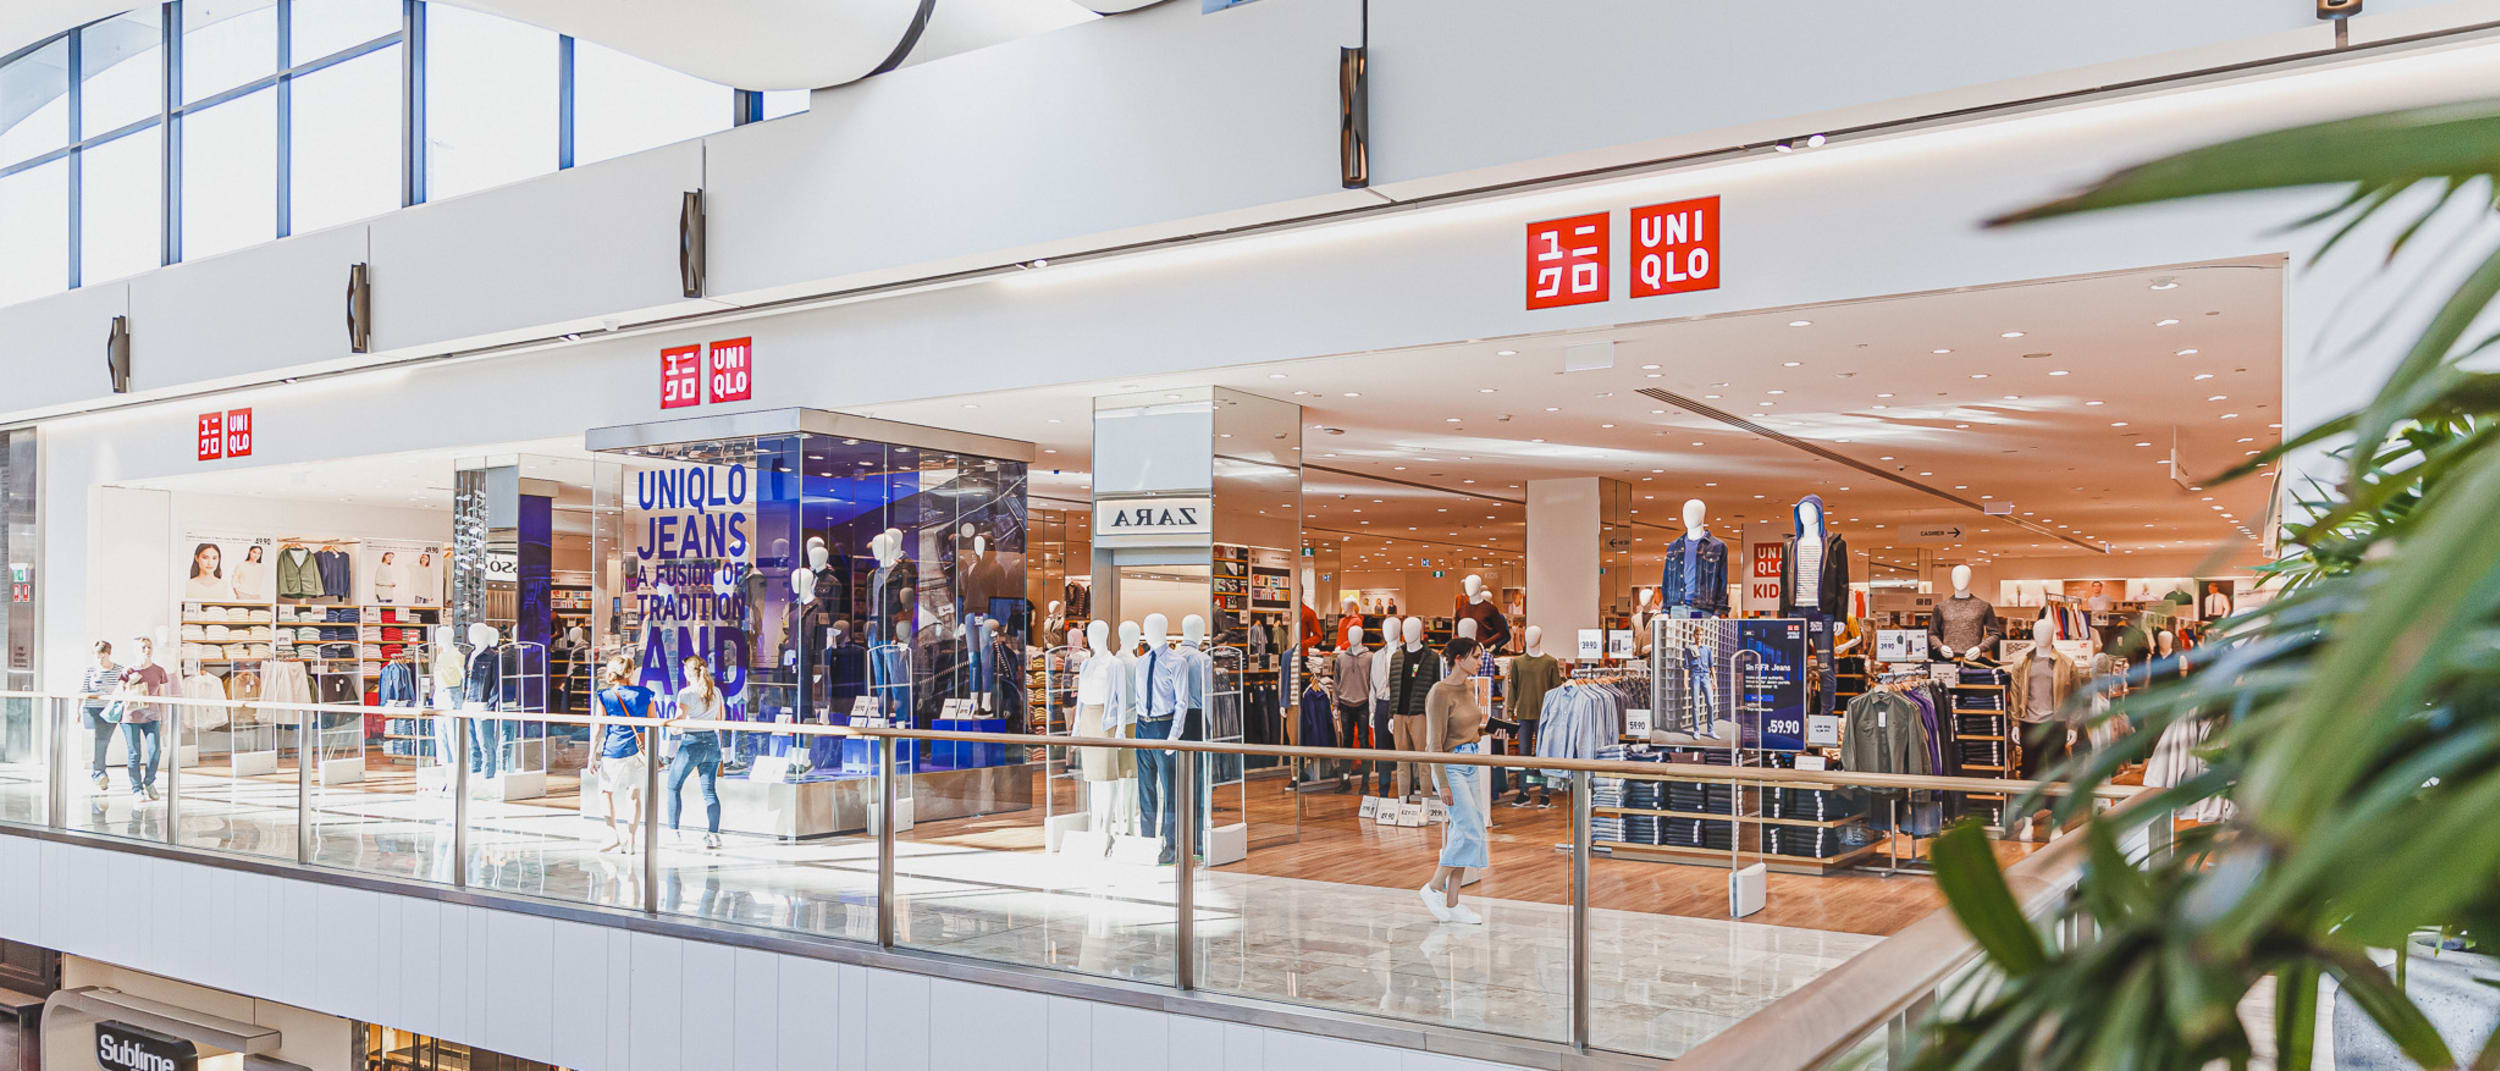 Find your spring look at UNIQLO